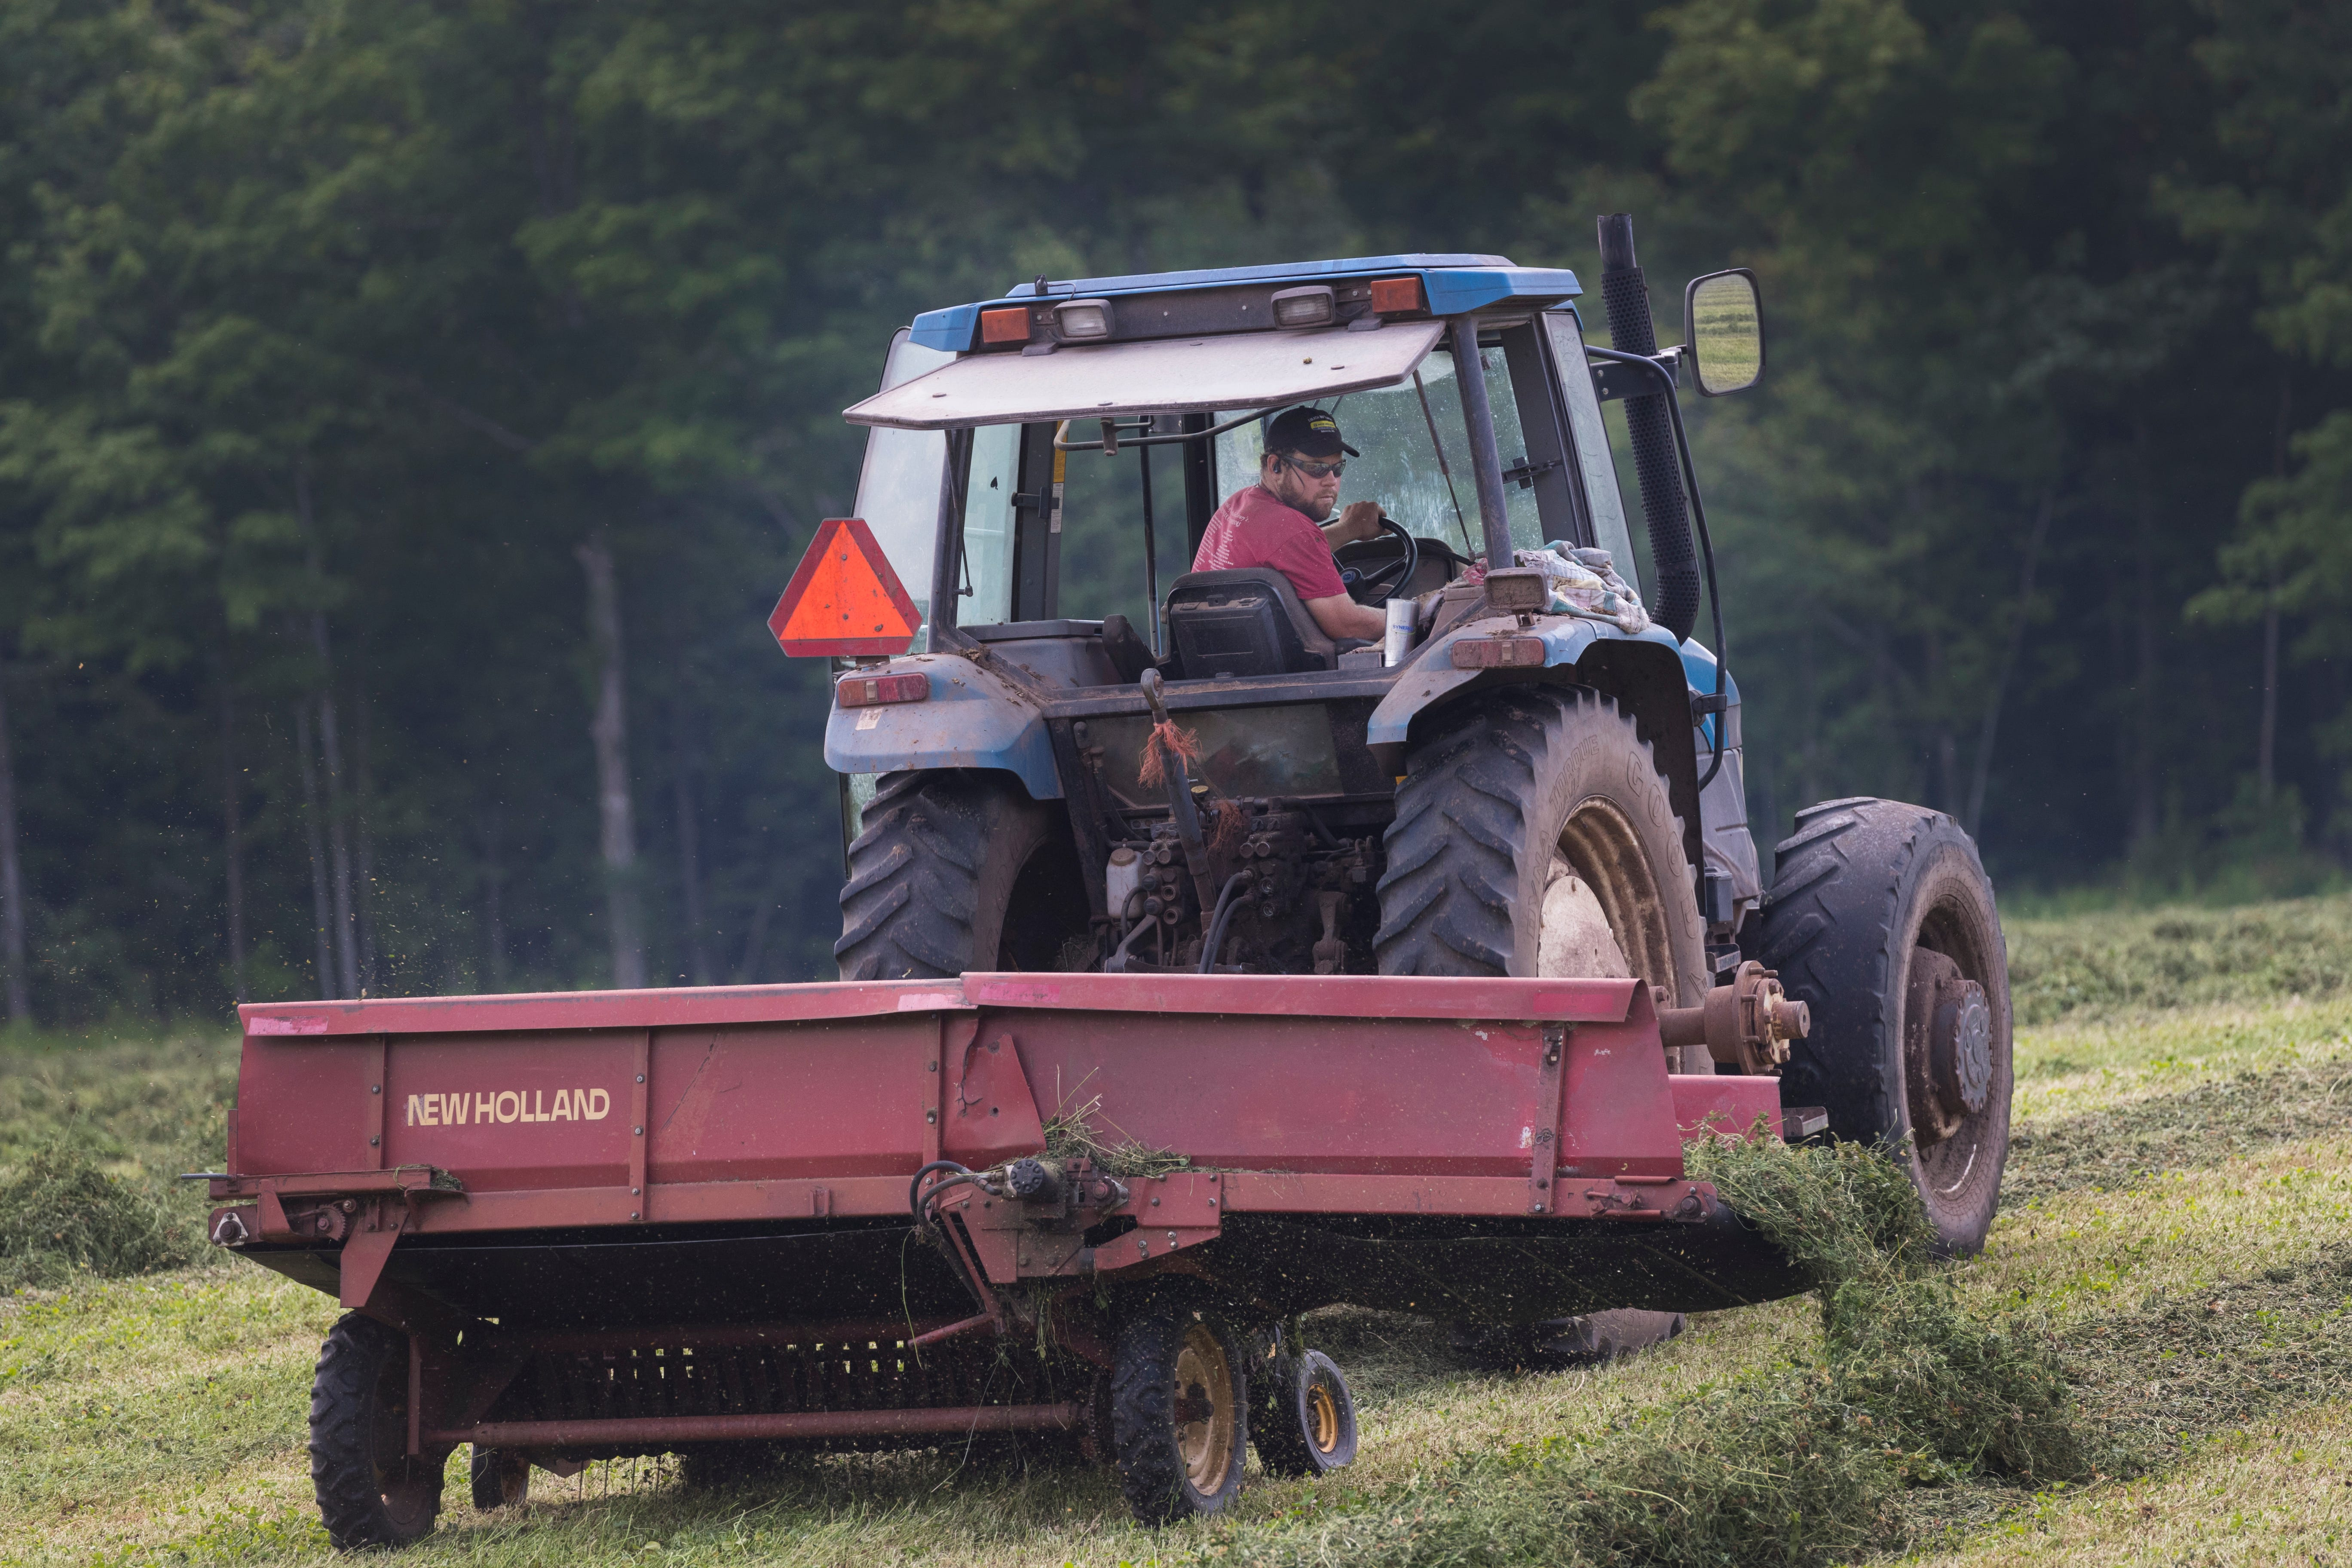 Tractor Farming Born To Drive a New Holland Forced To Go To School Kids